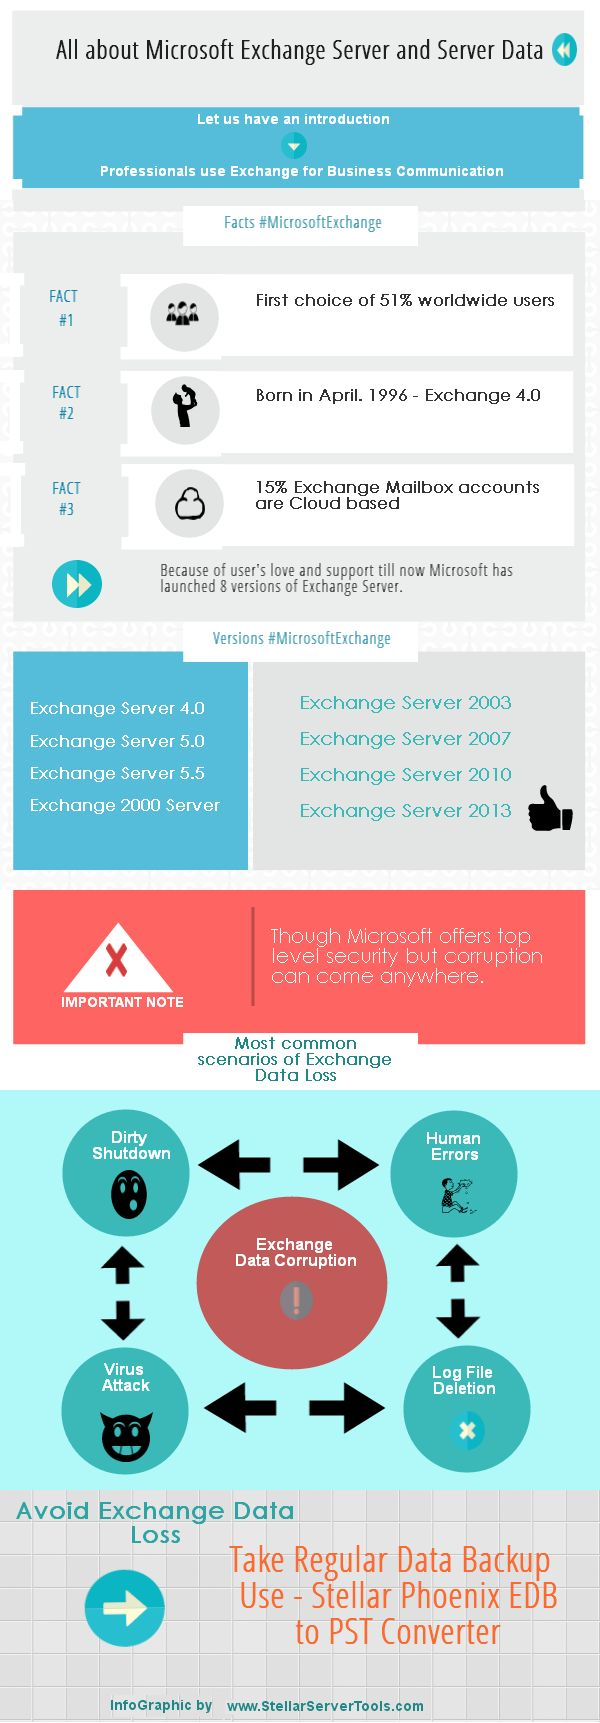 We all know that microsoft exchange server is the most flexible and secure way to perform